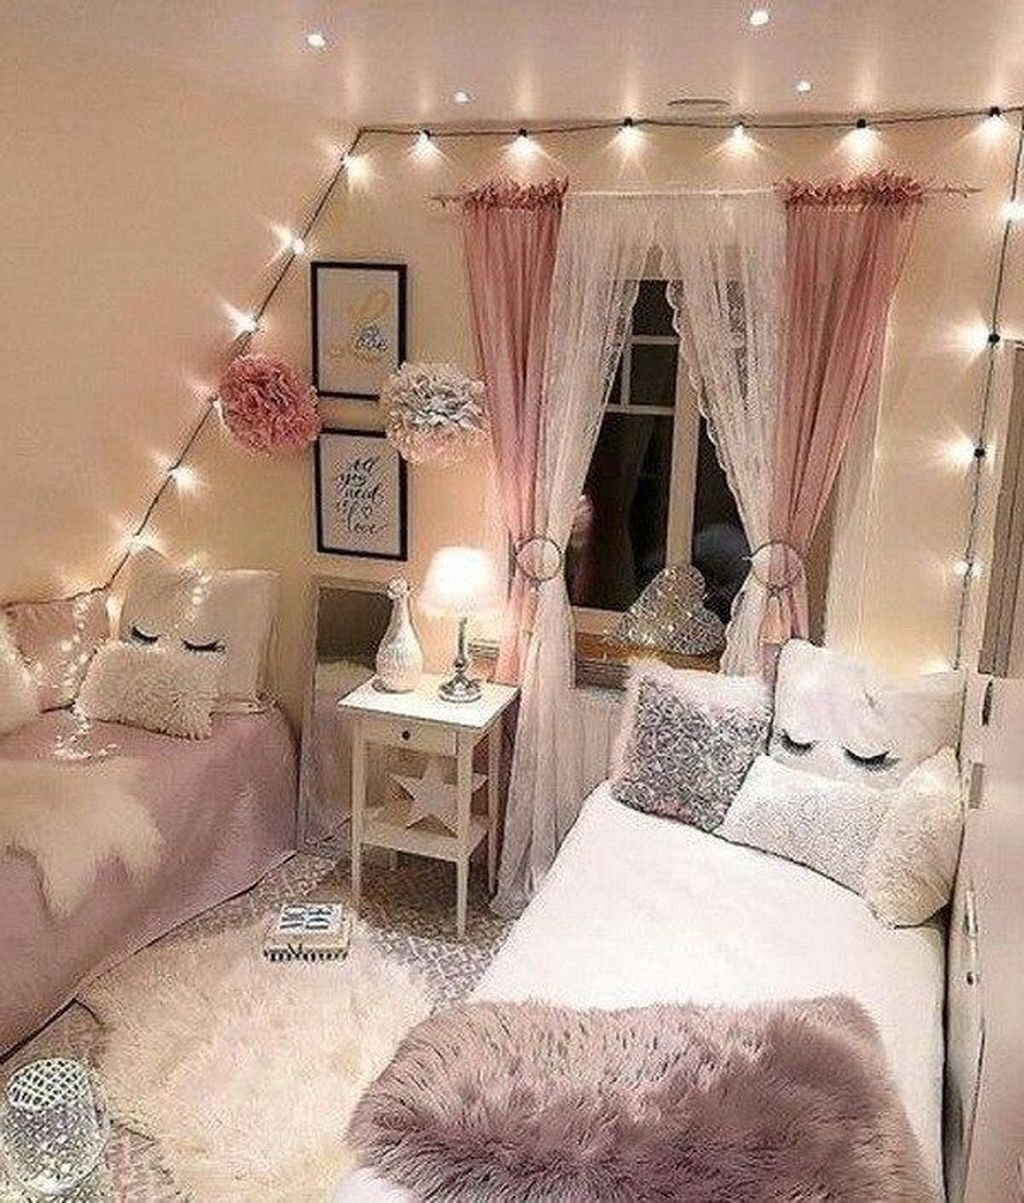 40+ Stunning Girls Bedroom Designs Ideas You Must Have images